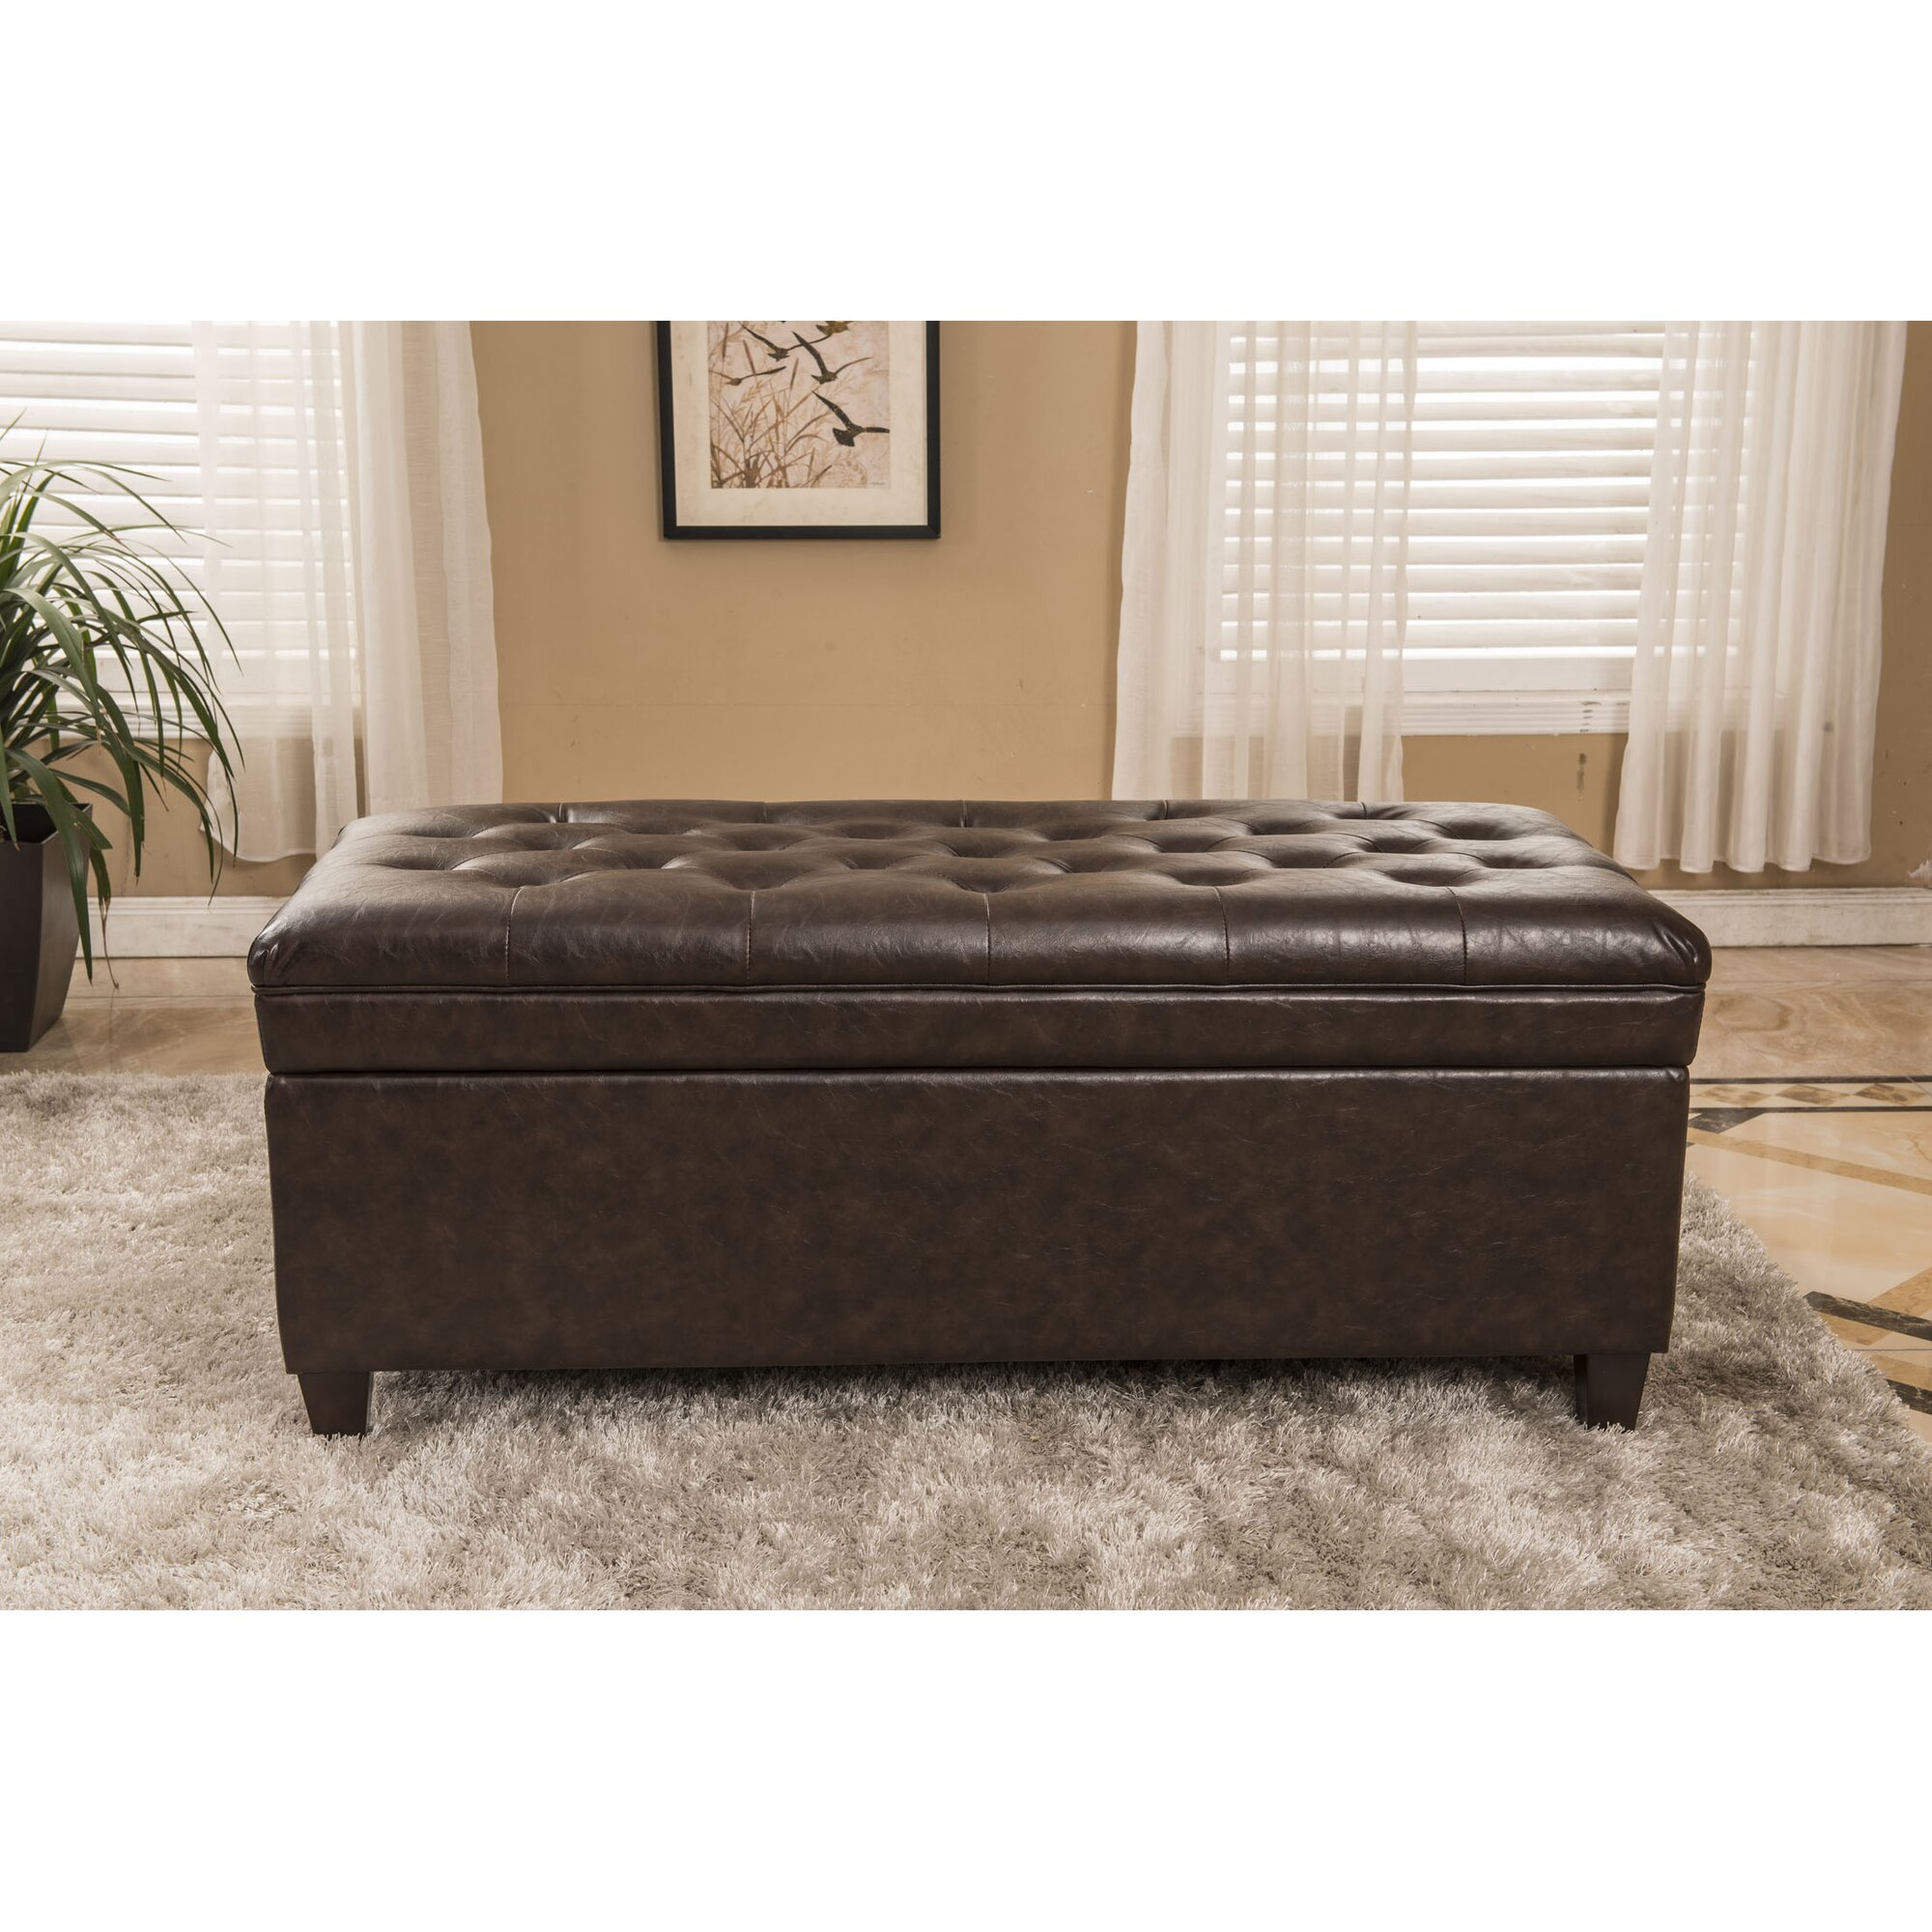 Classic Waxed Texture Dark Tufted Wood Storage Bedroom Bench ...